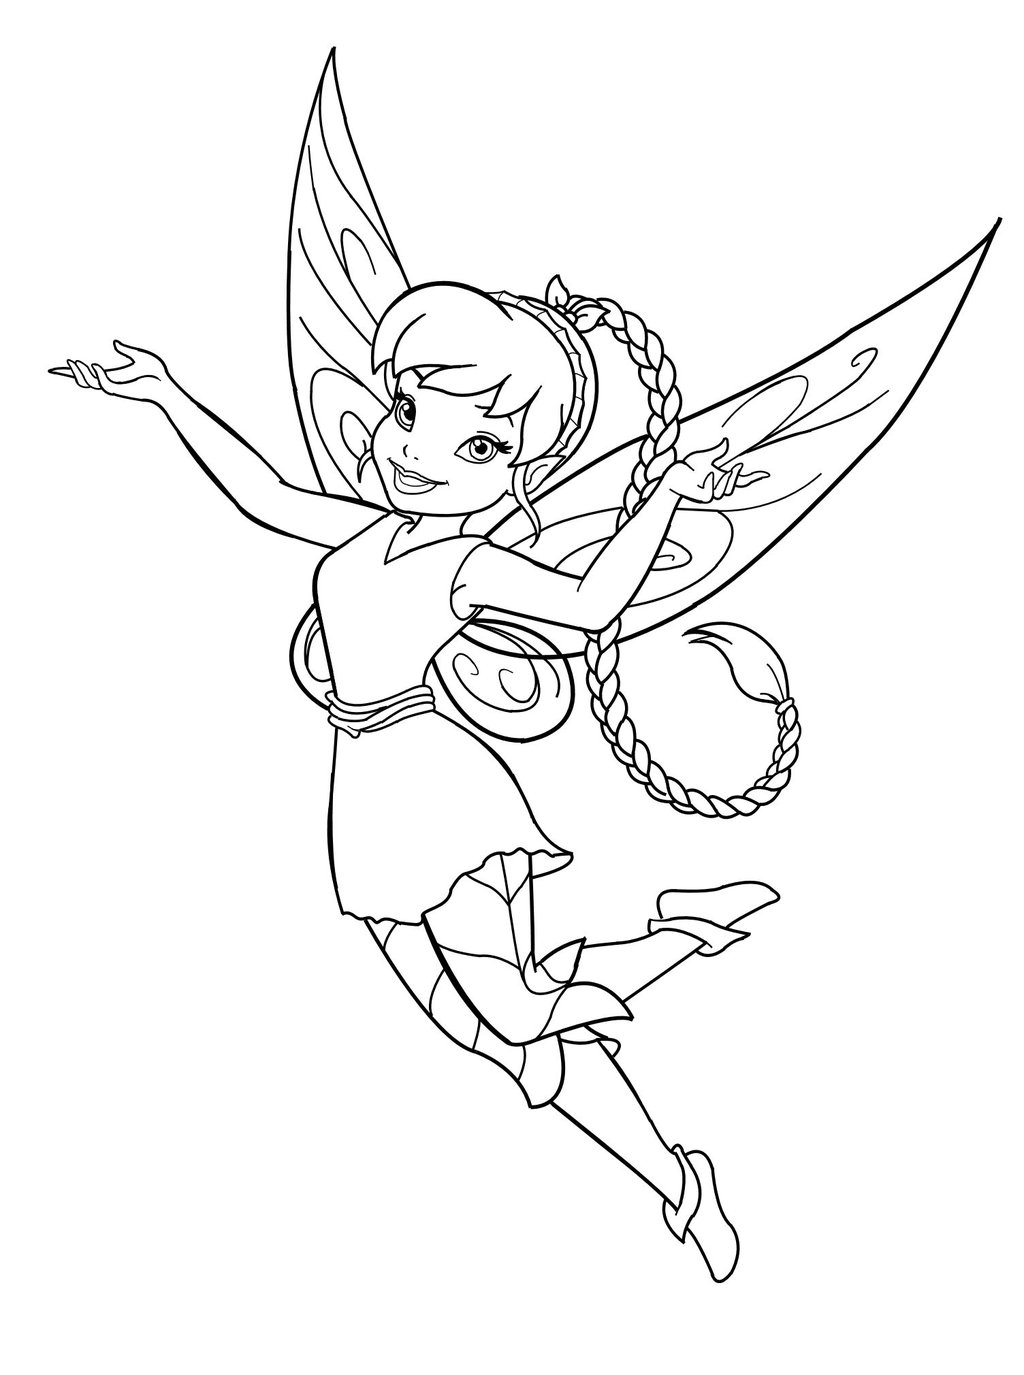 fairies coloring pages free printable fairy coloring pages for kids fairies pages coloring